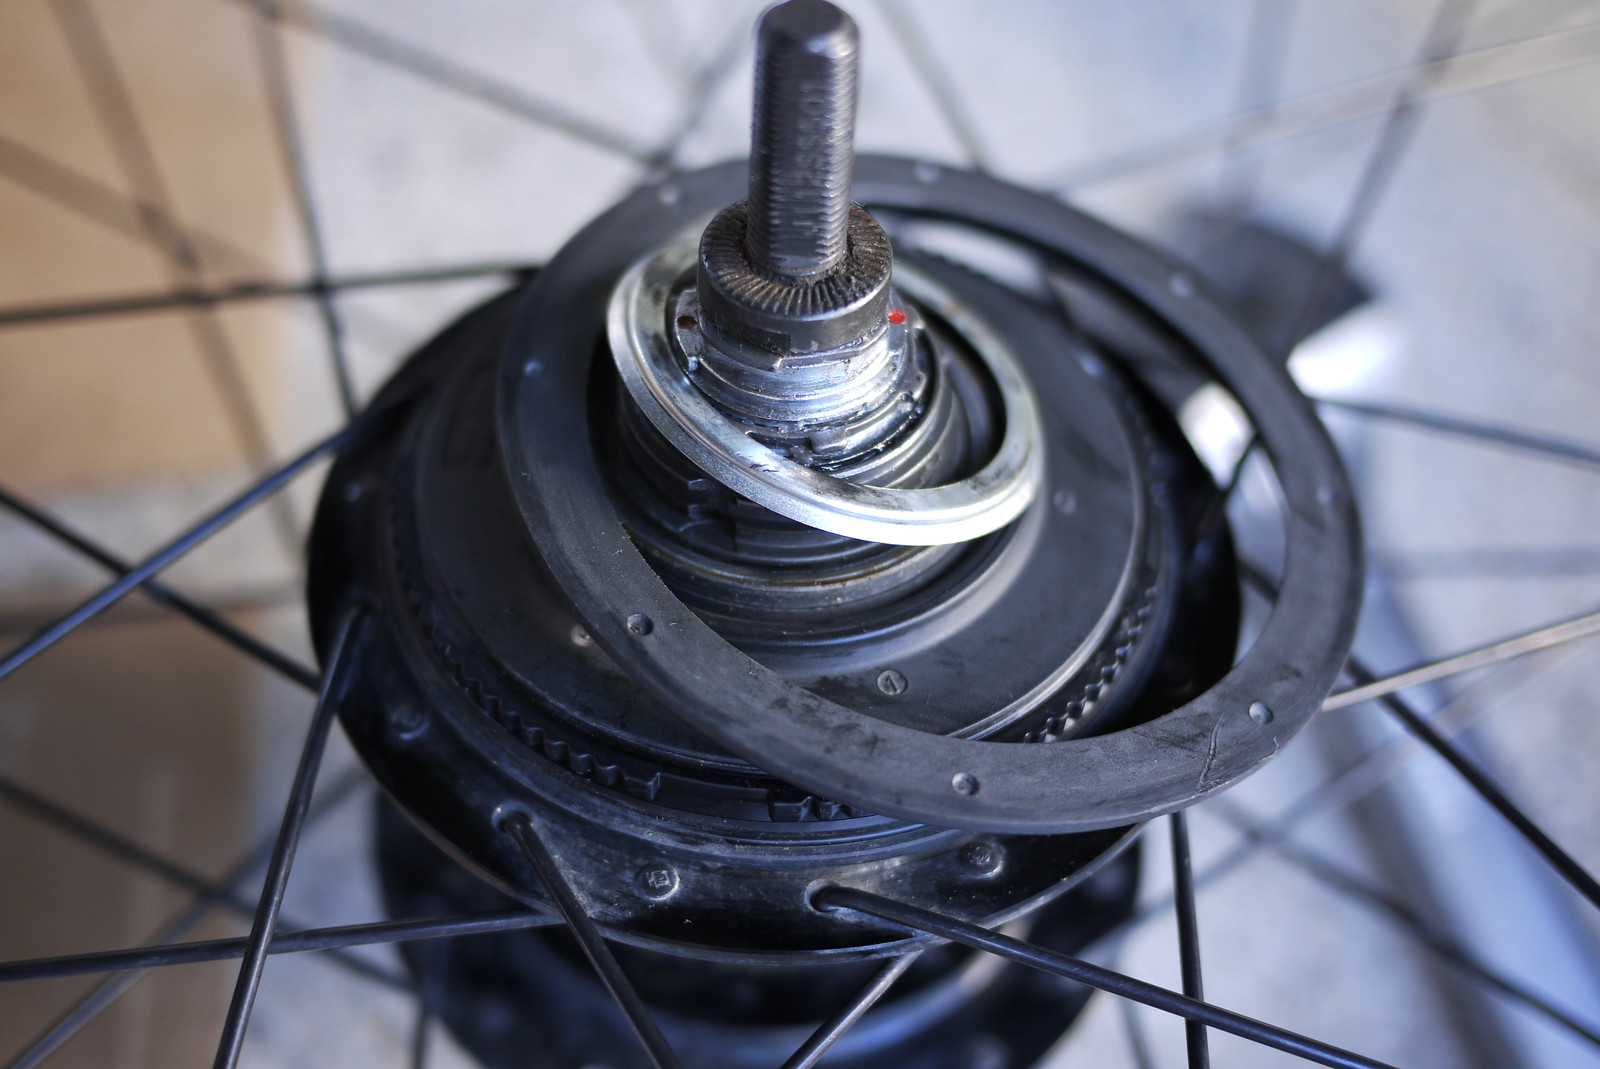 Dust cover removal on a Shimano Alfine 8 Speed Internal Gear Hub (IGH)